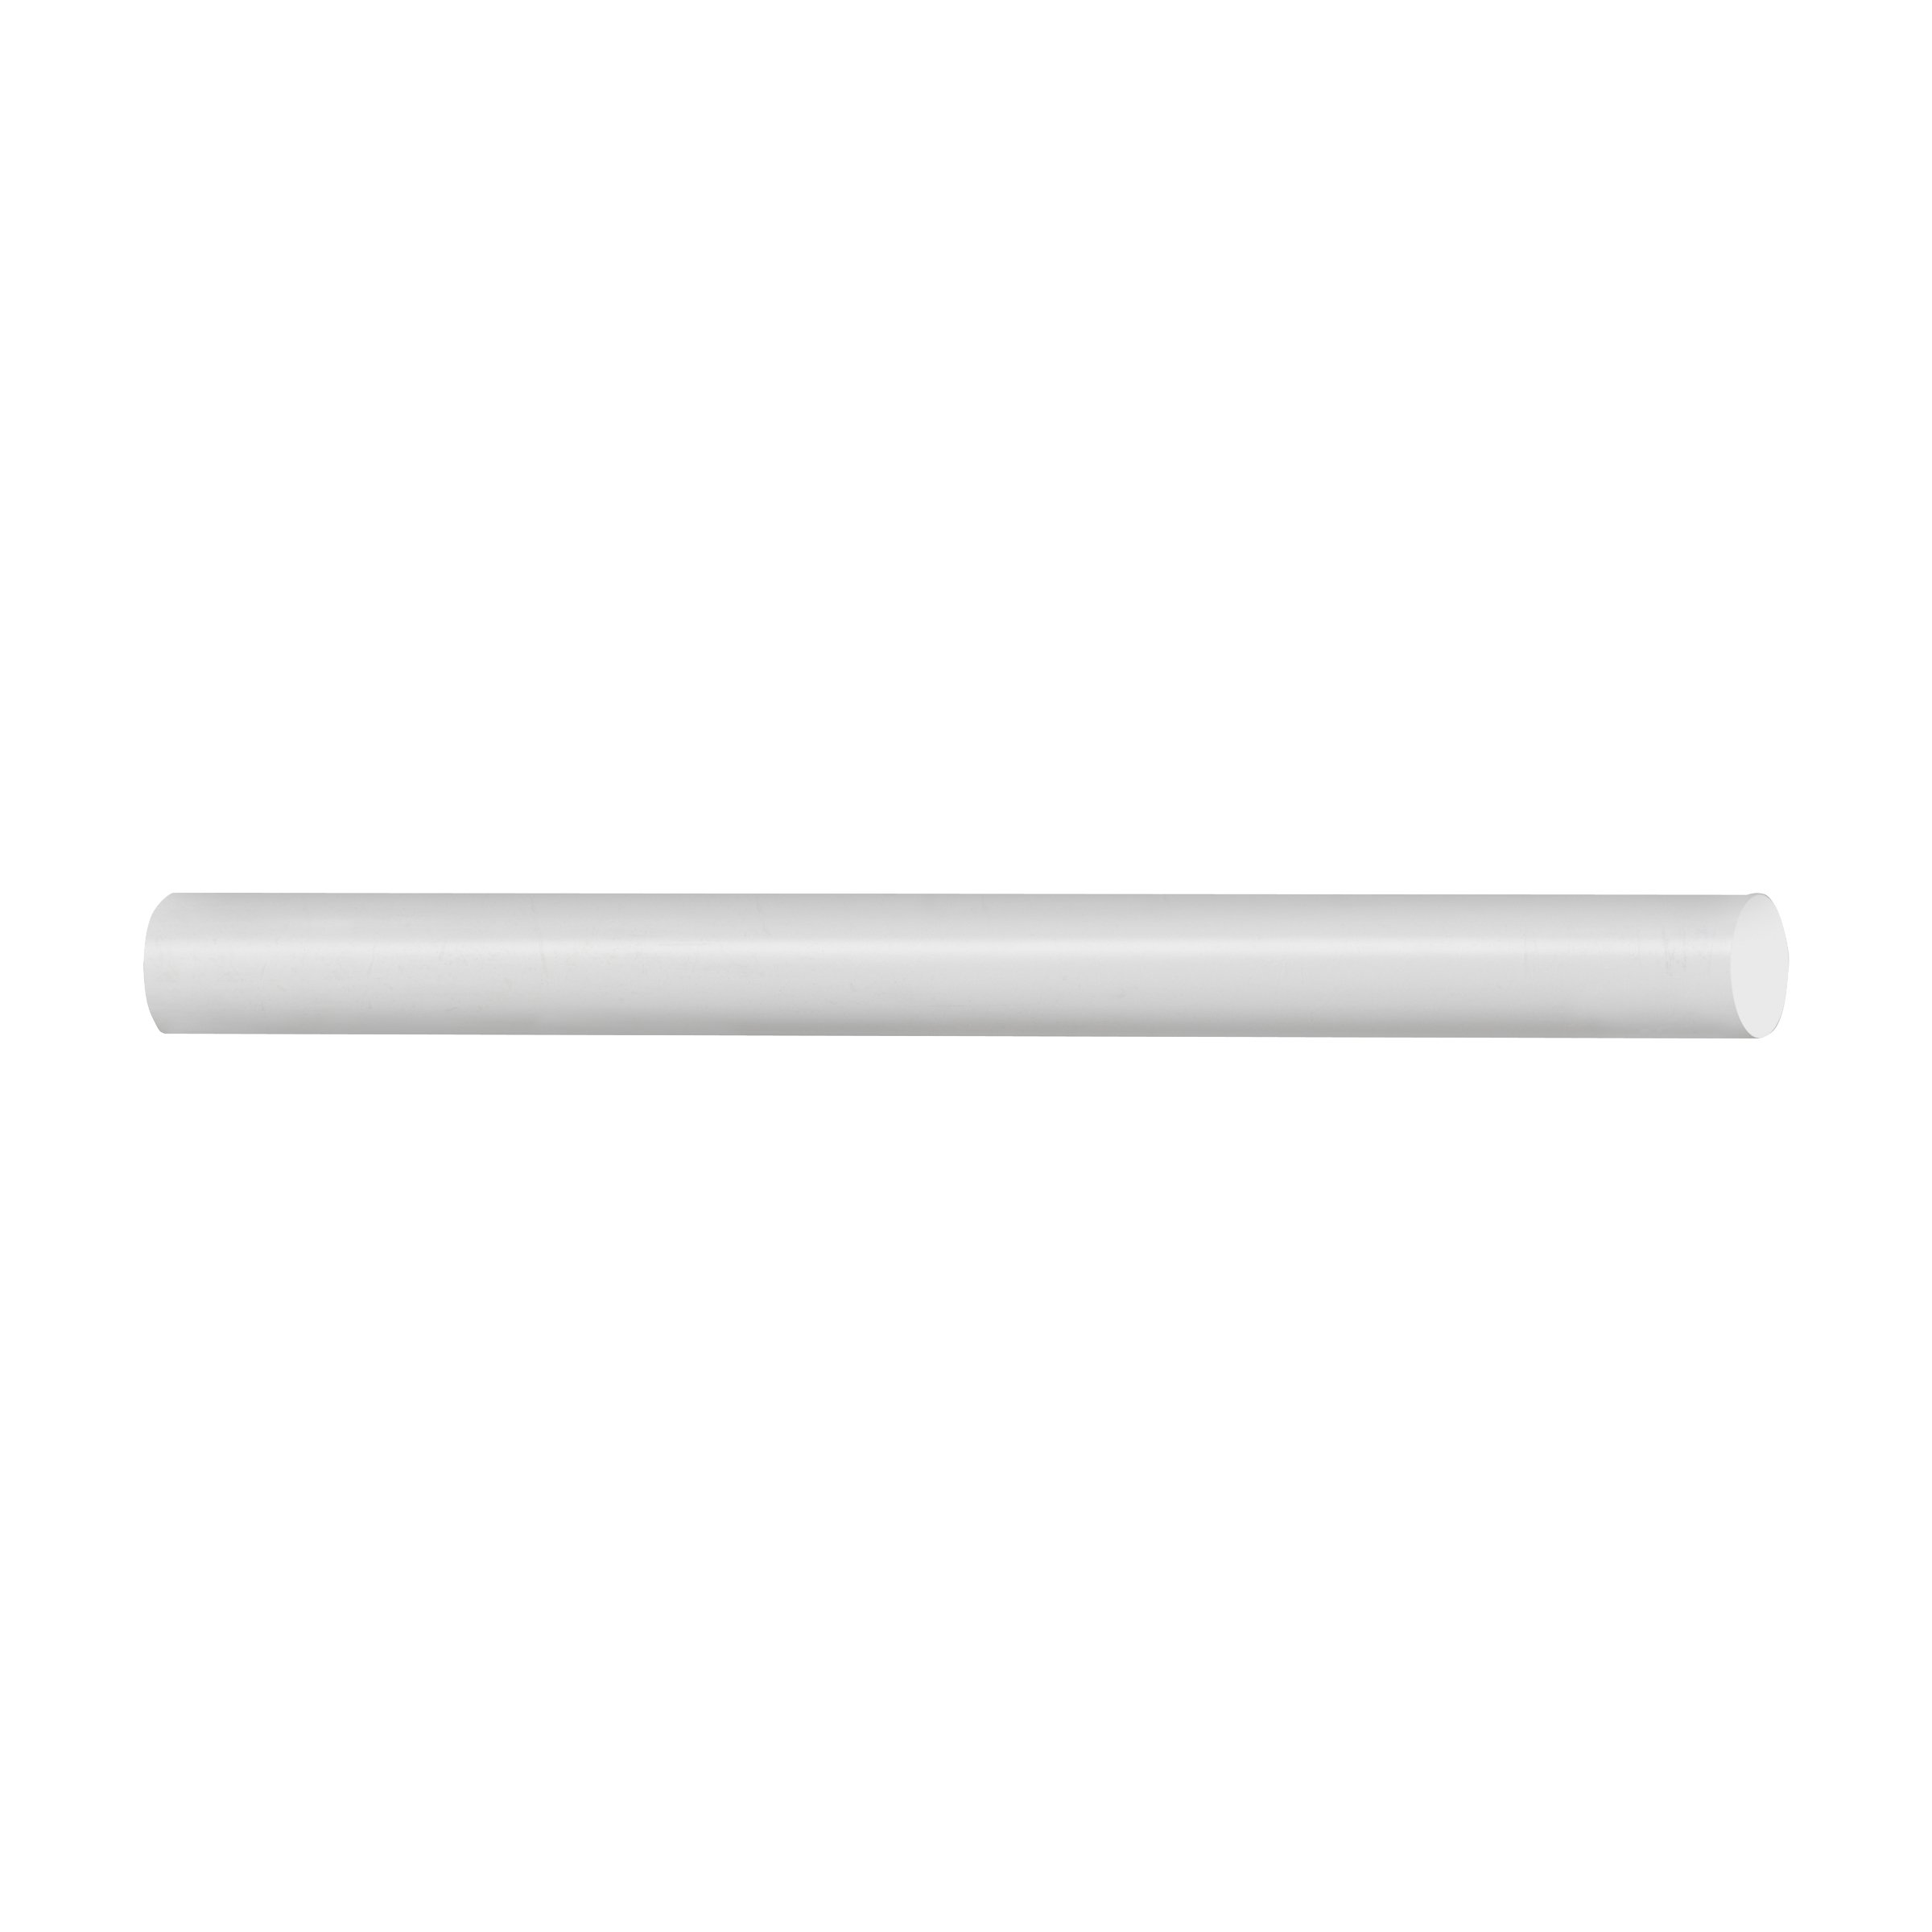 Markal 81020 H Paintstik Solid Paint Hot Surface Marker (225 F - 1100 F), White (Pack of 144) by Markal